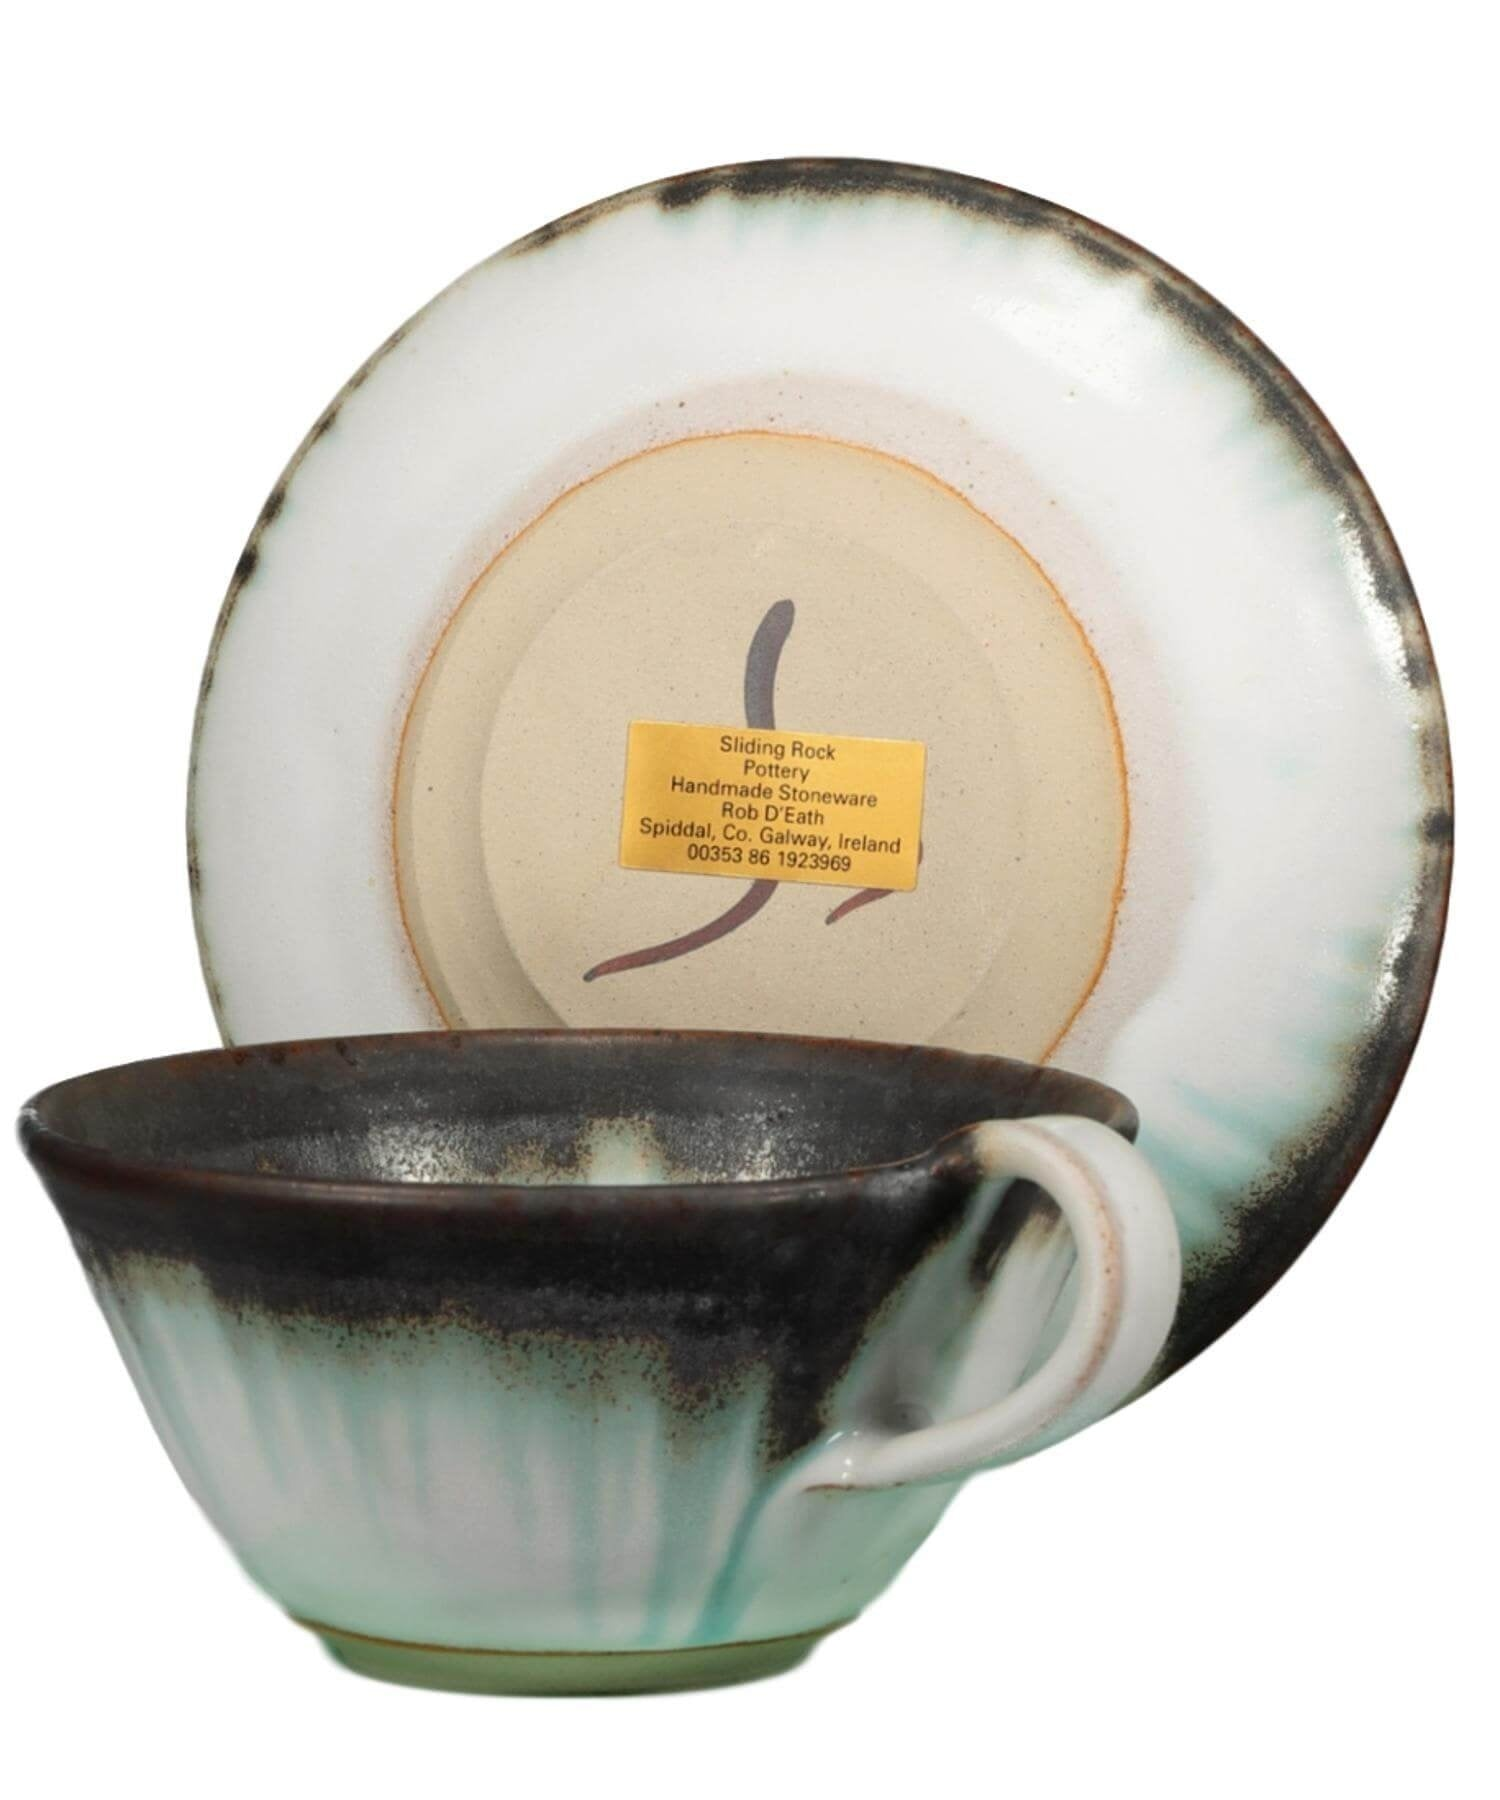 Cappuccino Cup & Saucer Set - [Sliding Rock] - Pottery & Ceramics - Irish Gifts